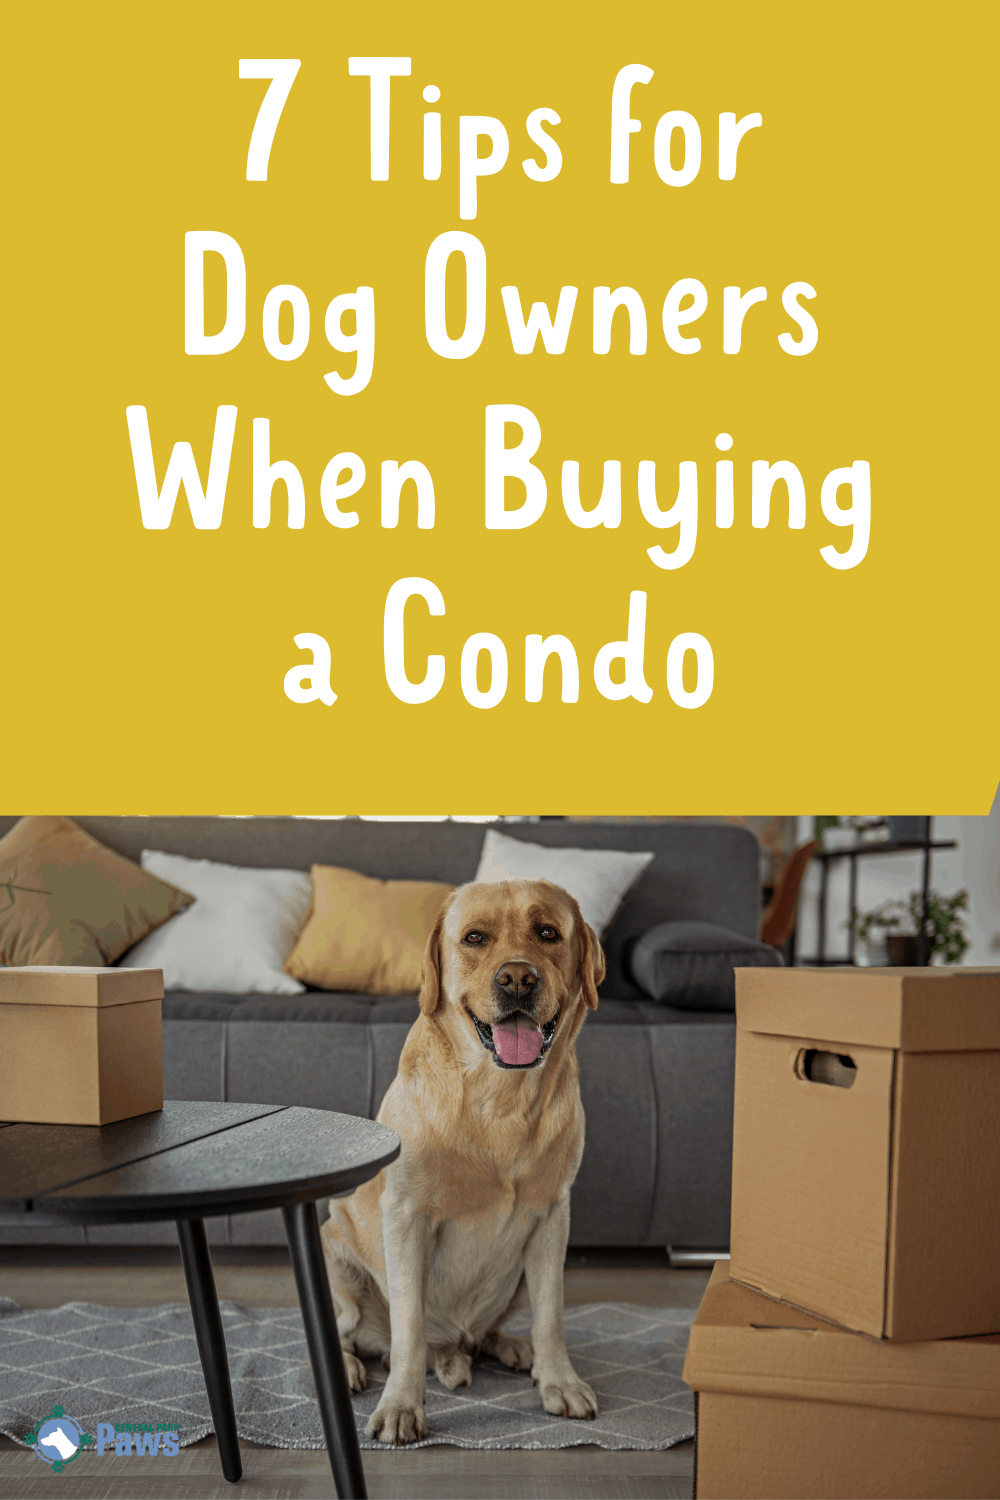 7 Tips for Dog Owners When Buying a Condo - Pinterest